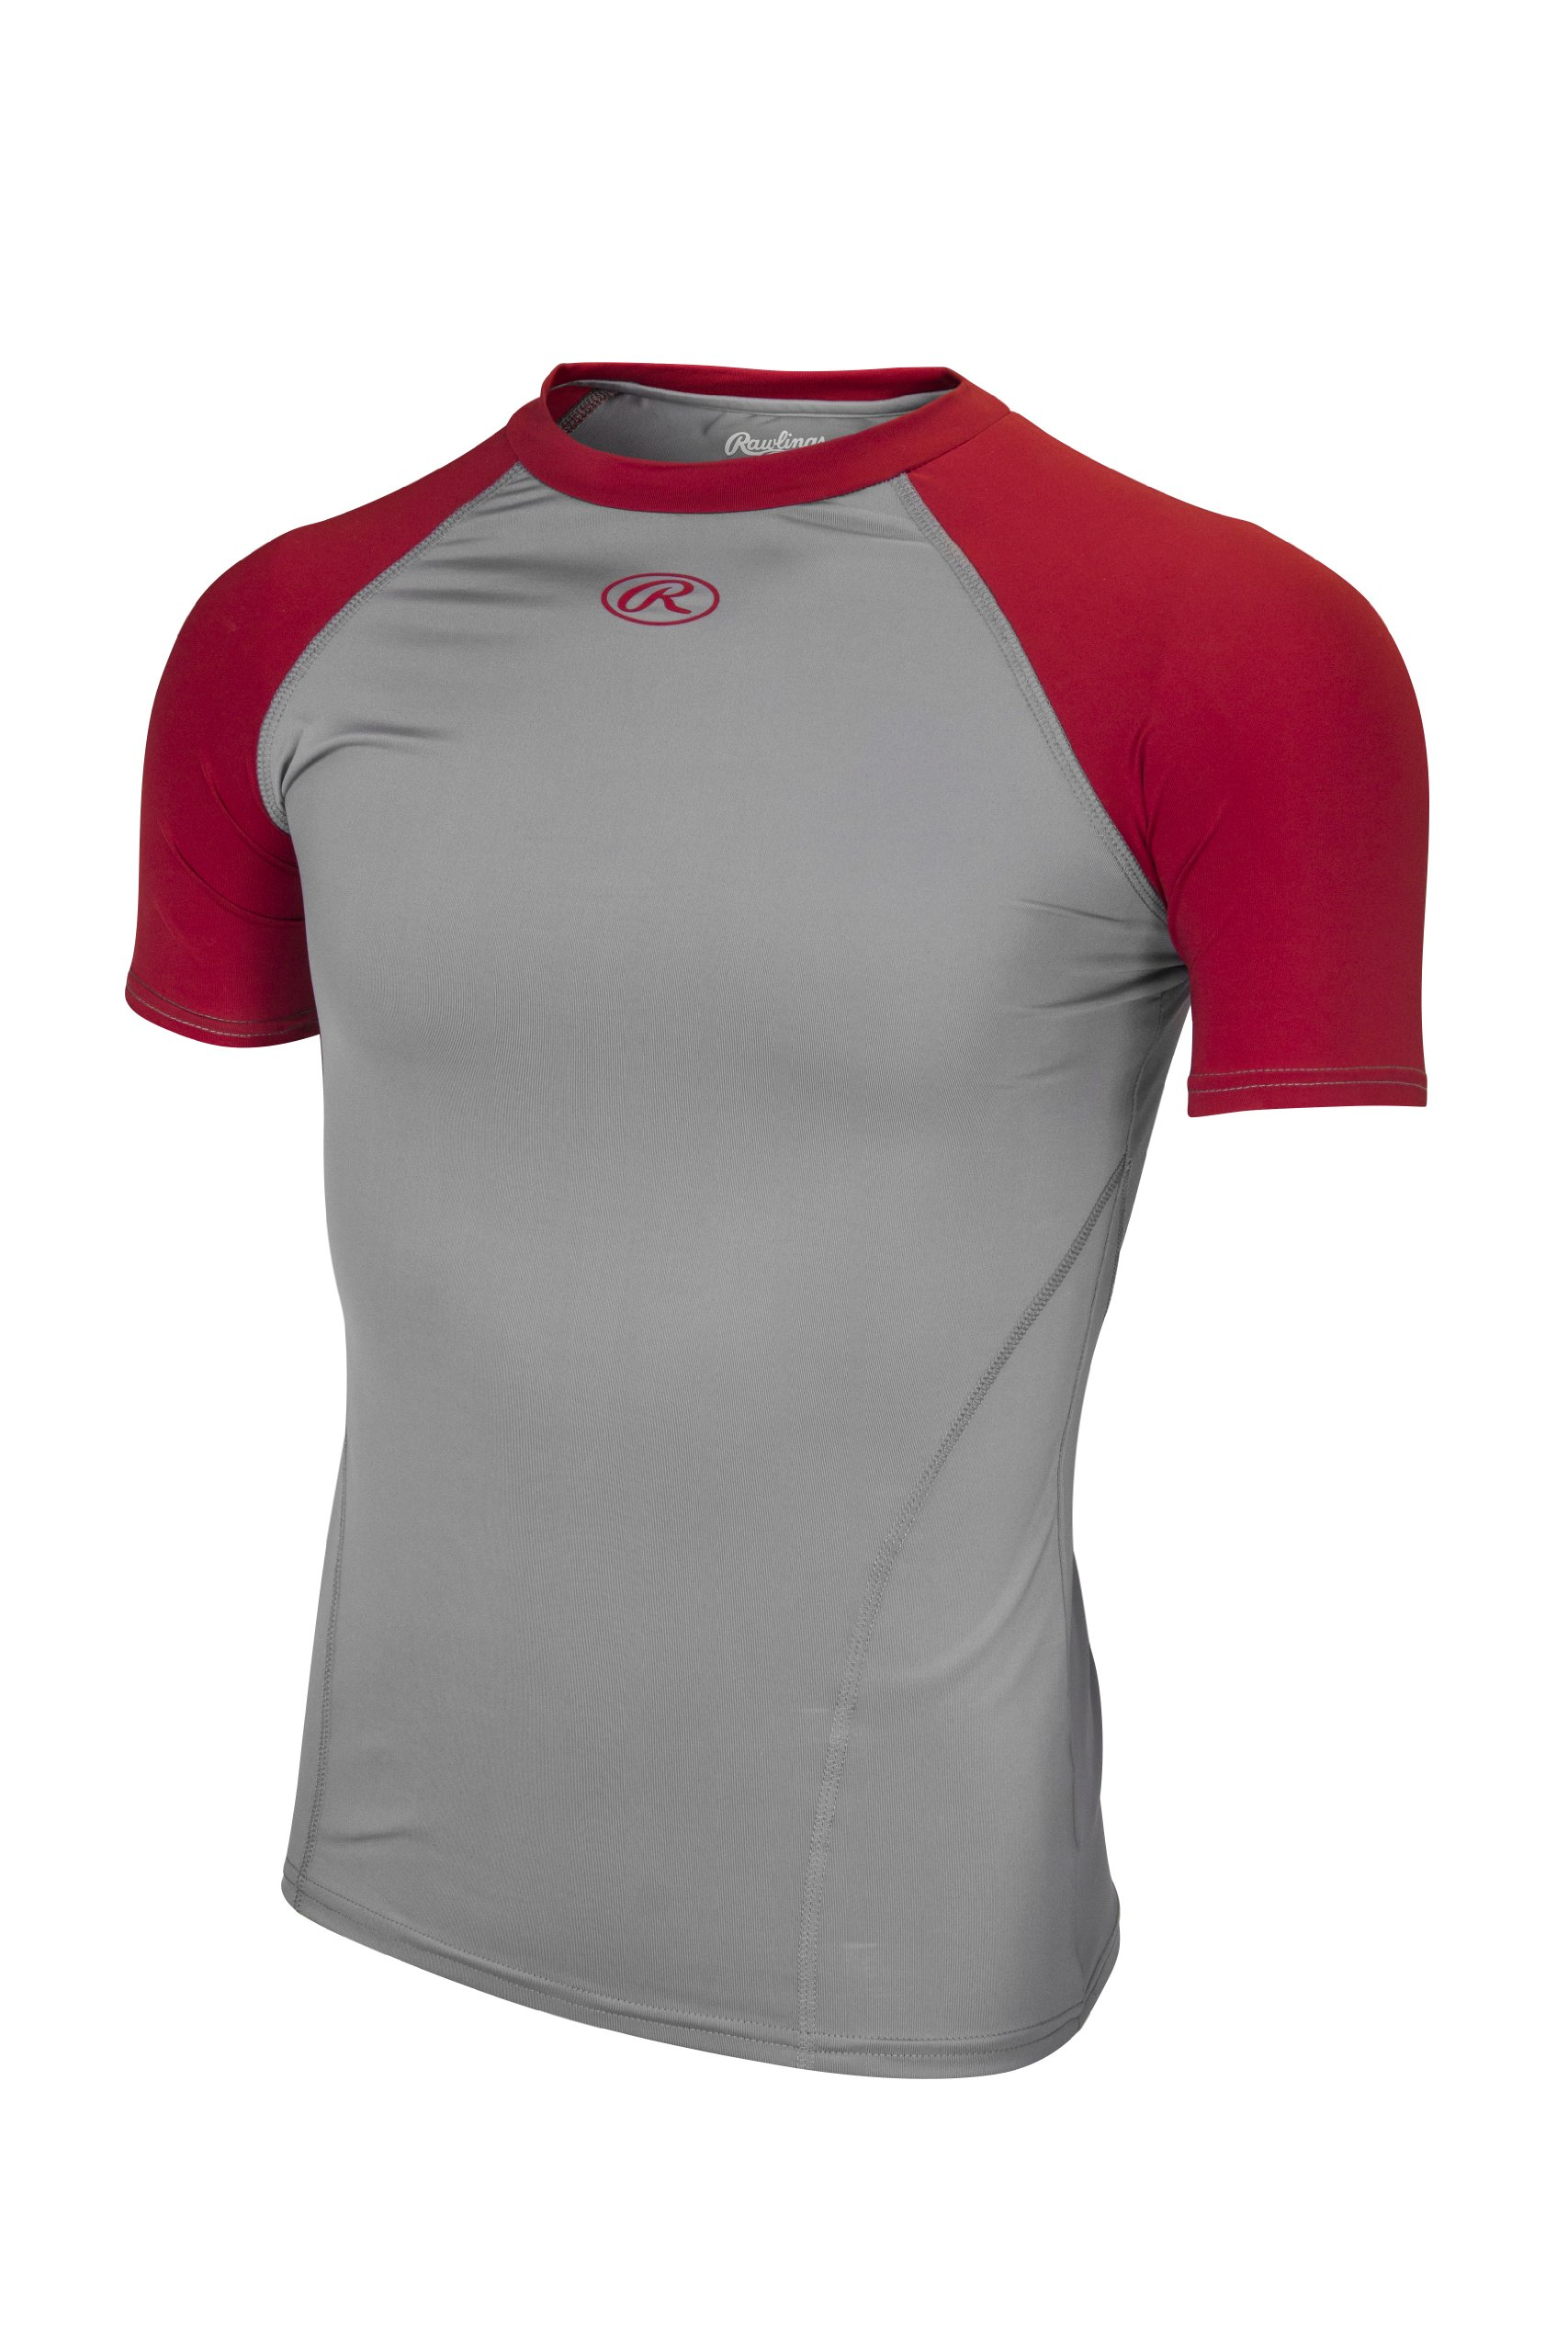 Rawlings Youth Compression Tee, Scarlet, X-Large